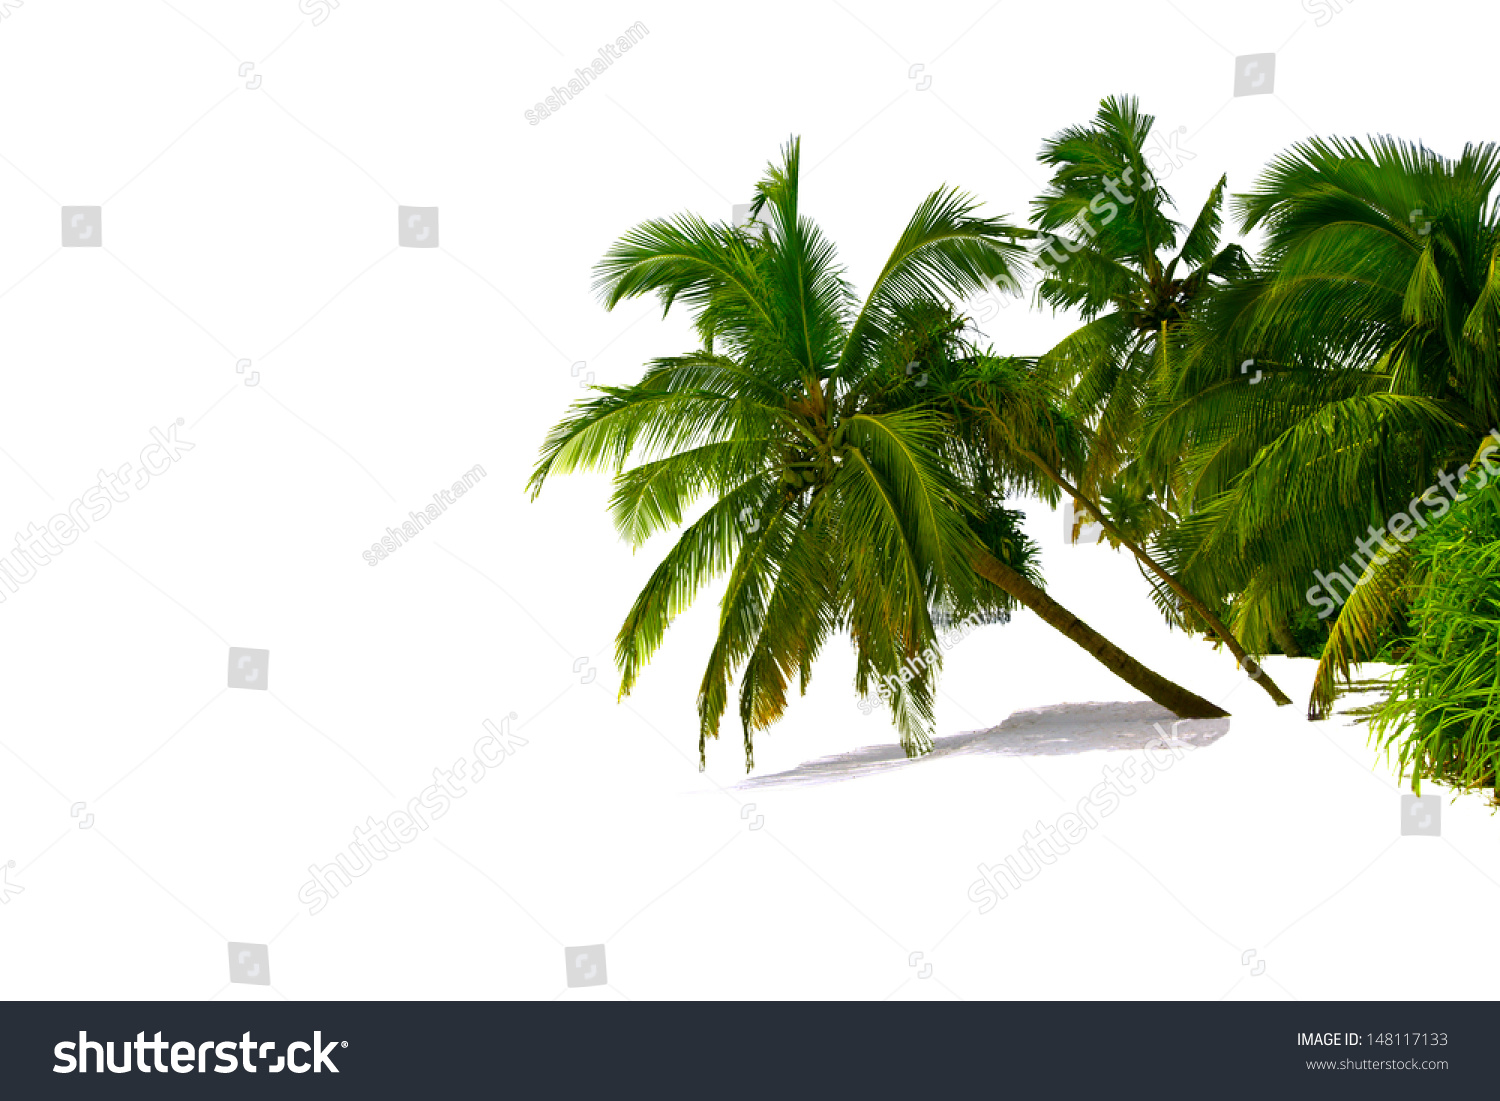 Colorful Palm Trees Isolated Over White Stock Photo 148117133 ...